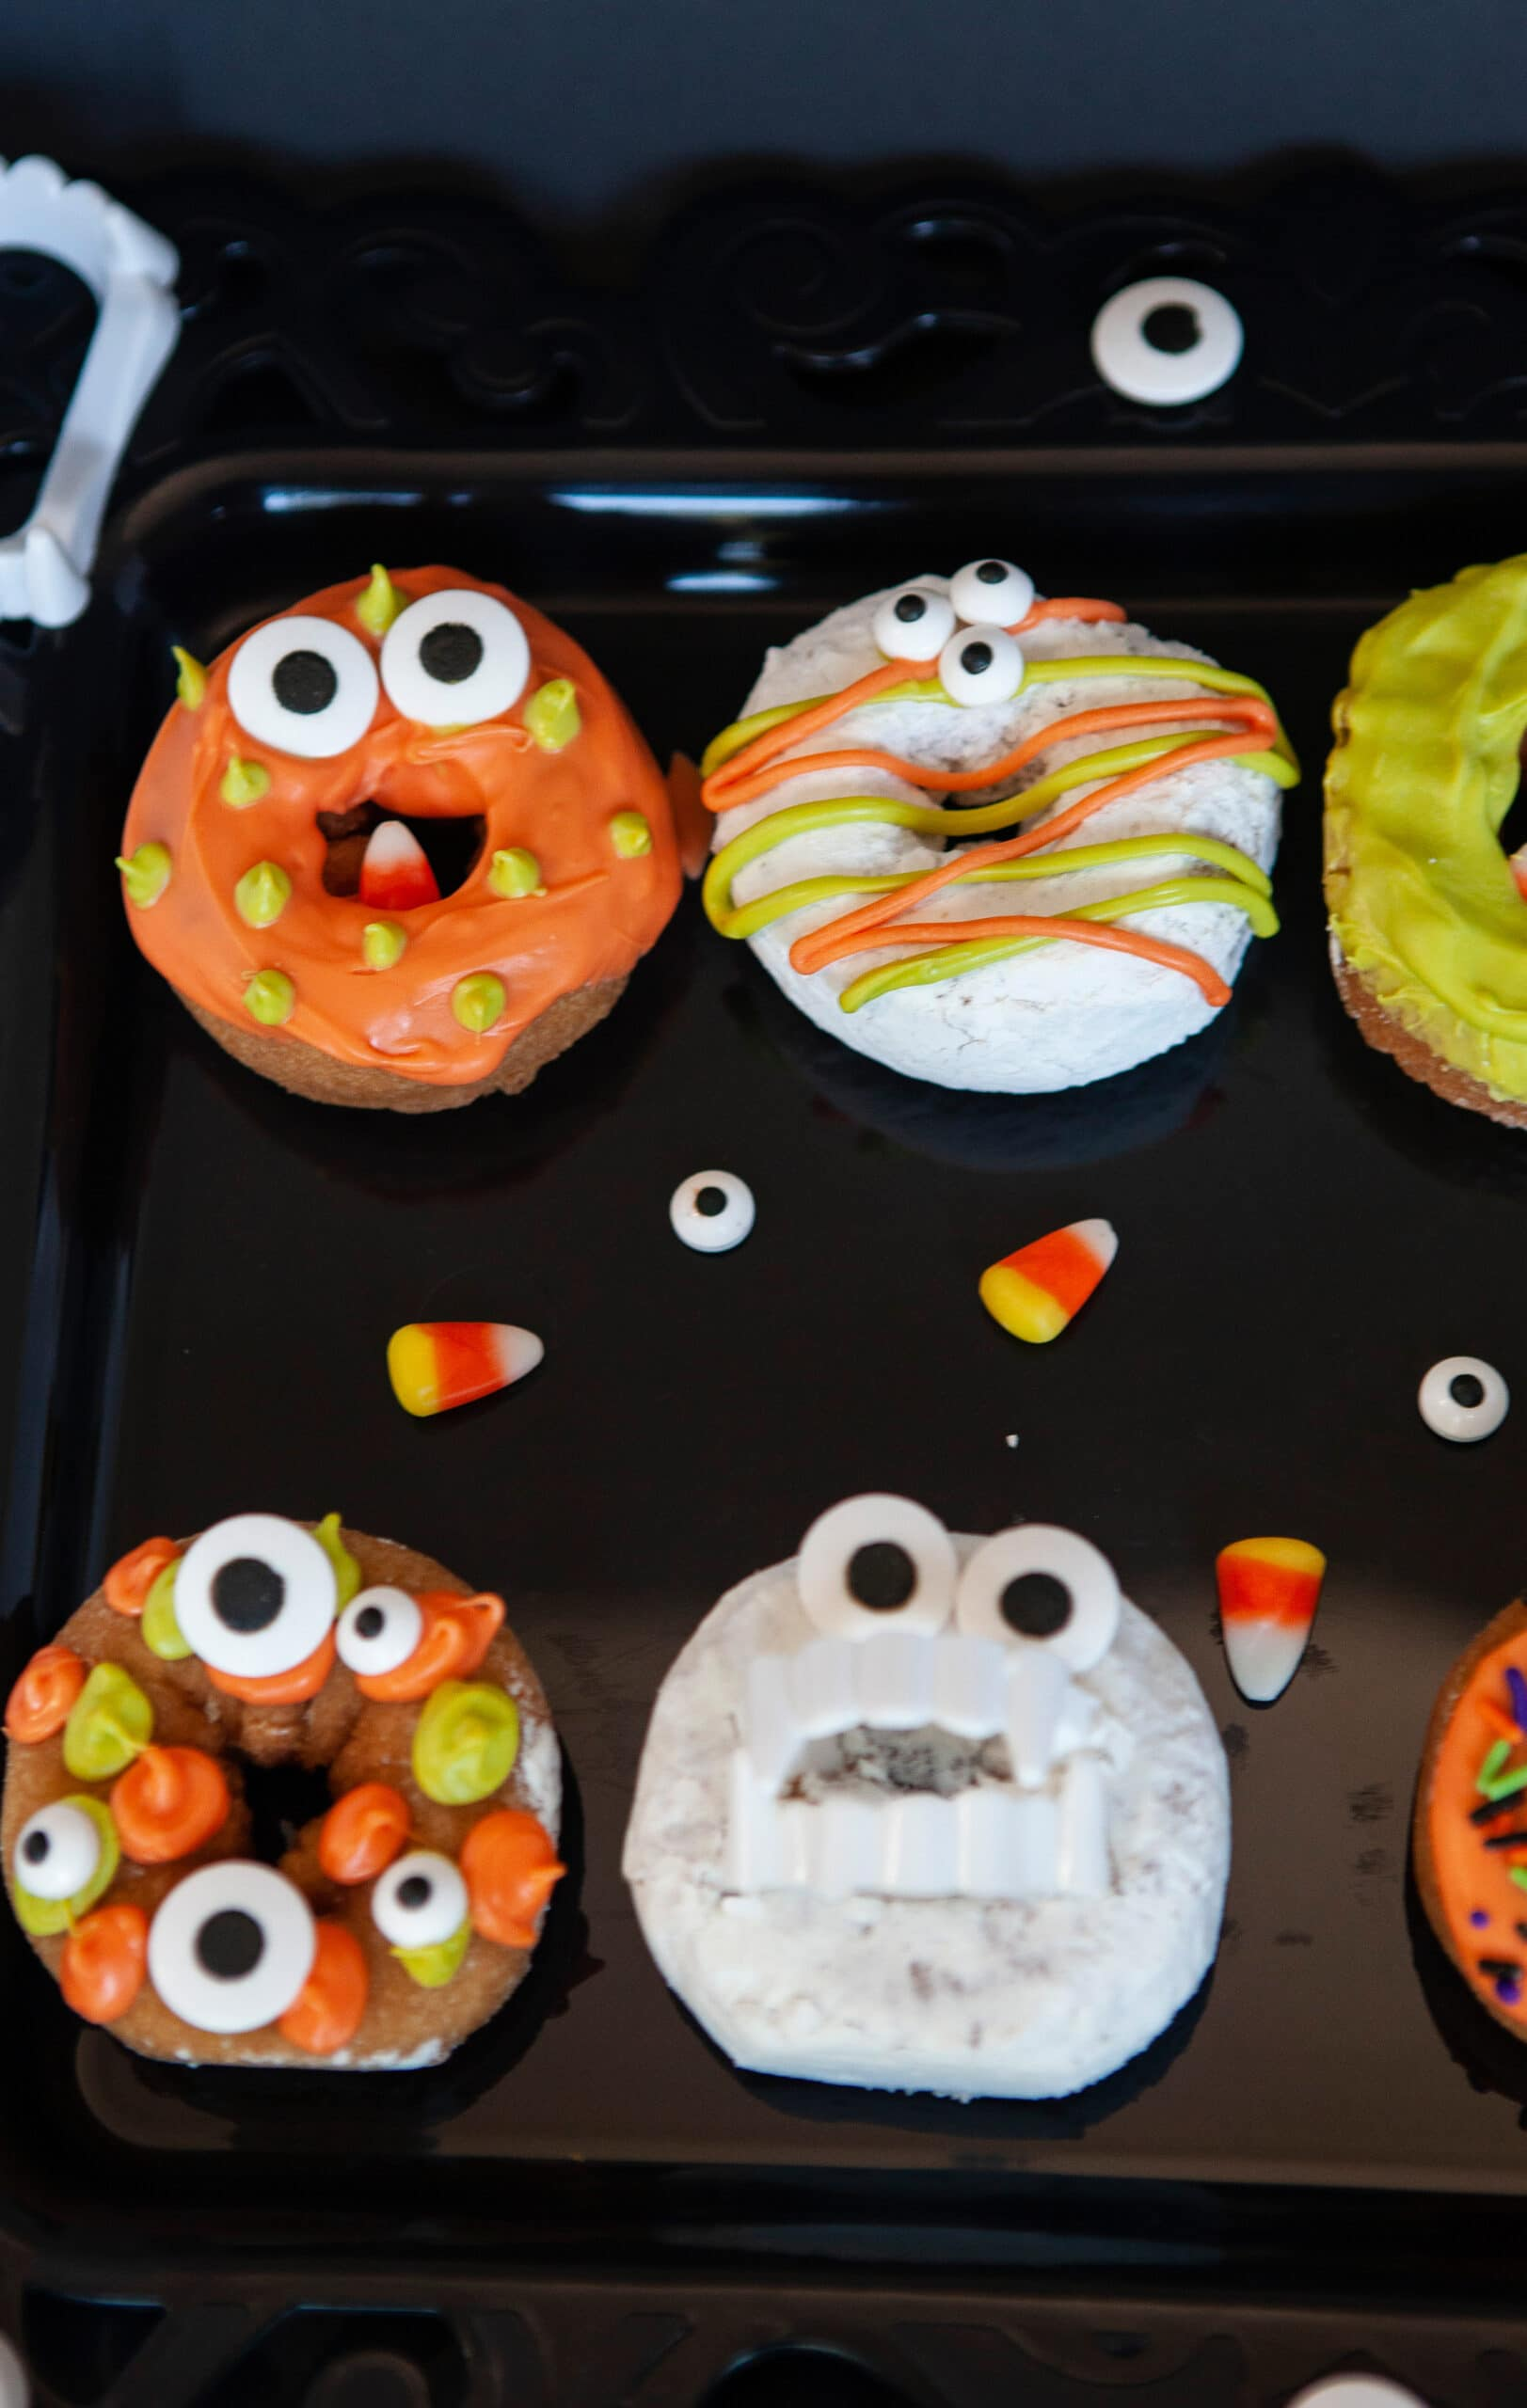 Monster Donuts Alien Eyes. Make these spooky cute Monster Donuts for your next Halloween event. Made with your favorite donuts as a base, you can create and decorate vampires, mummies, and other iconic edible Halloween monsters.